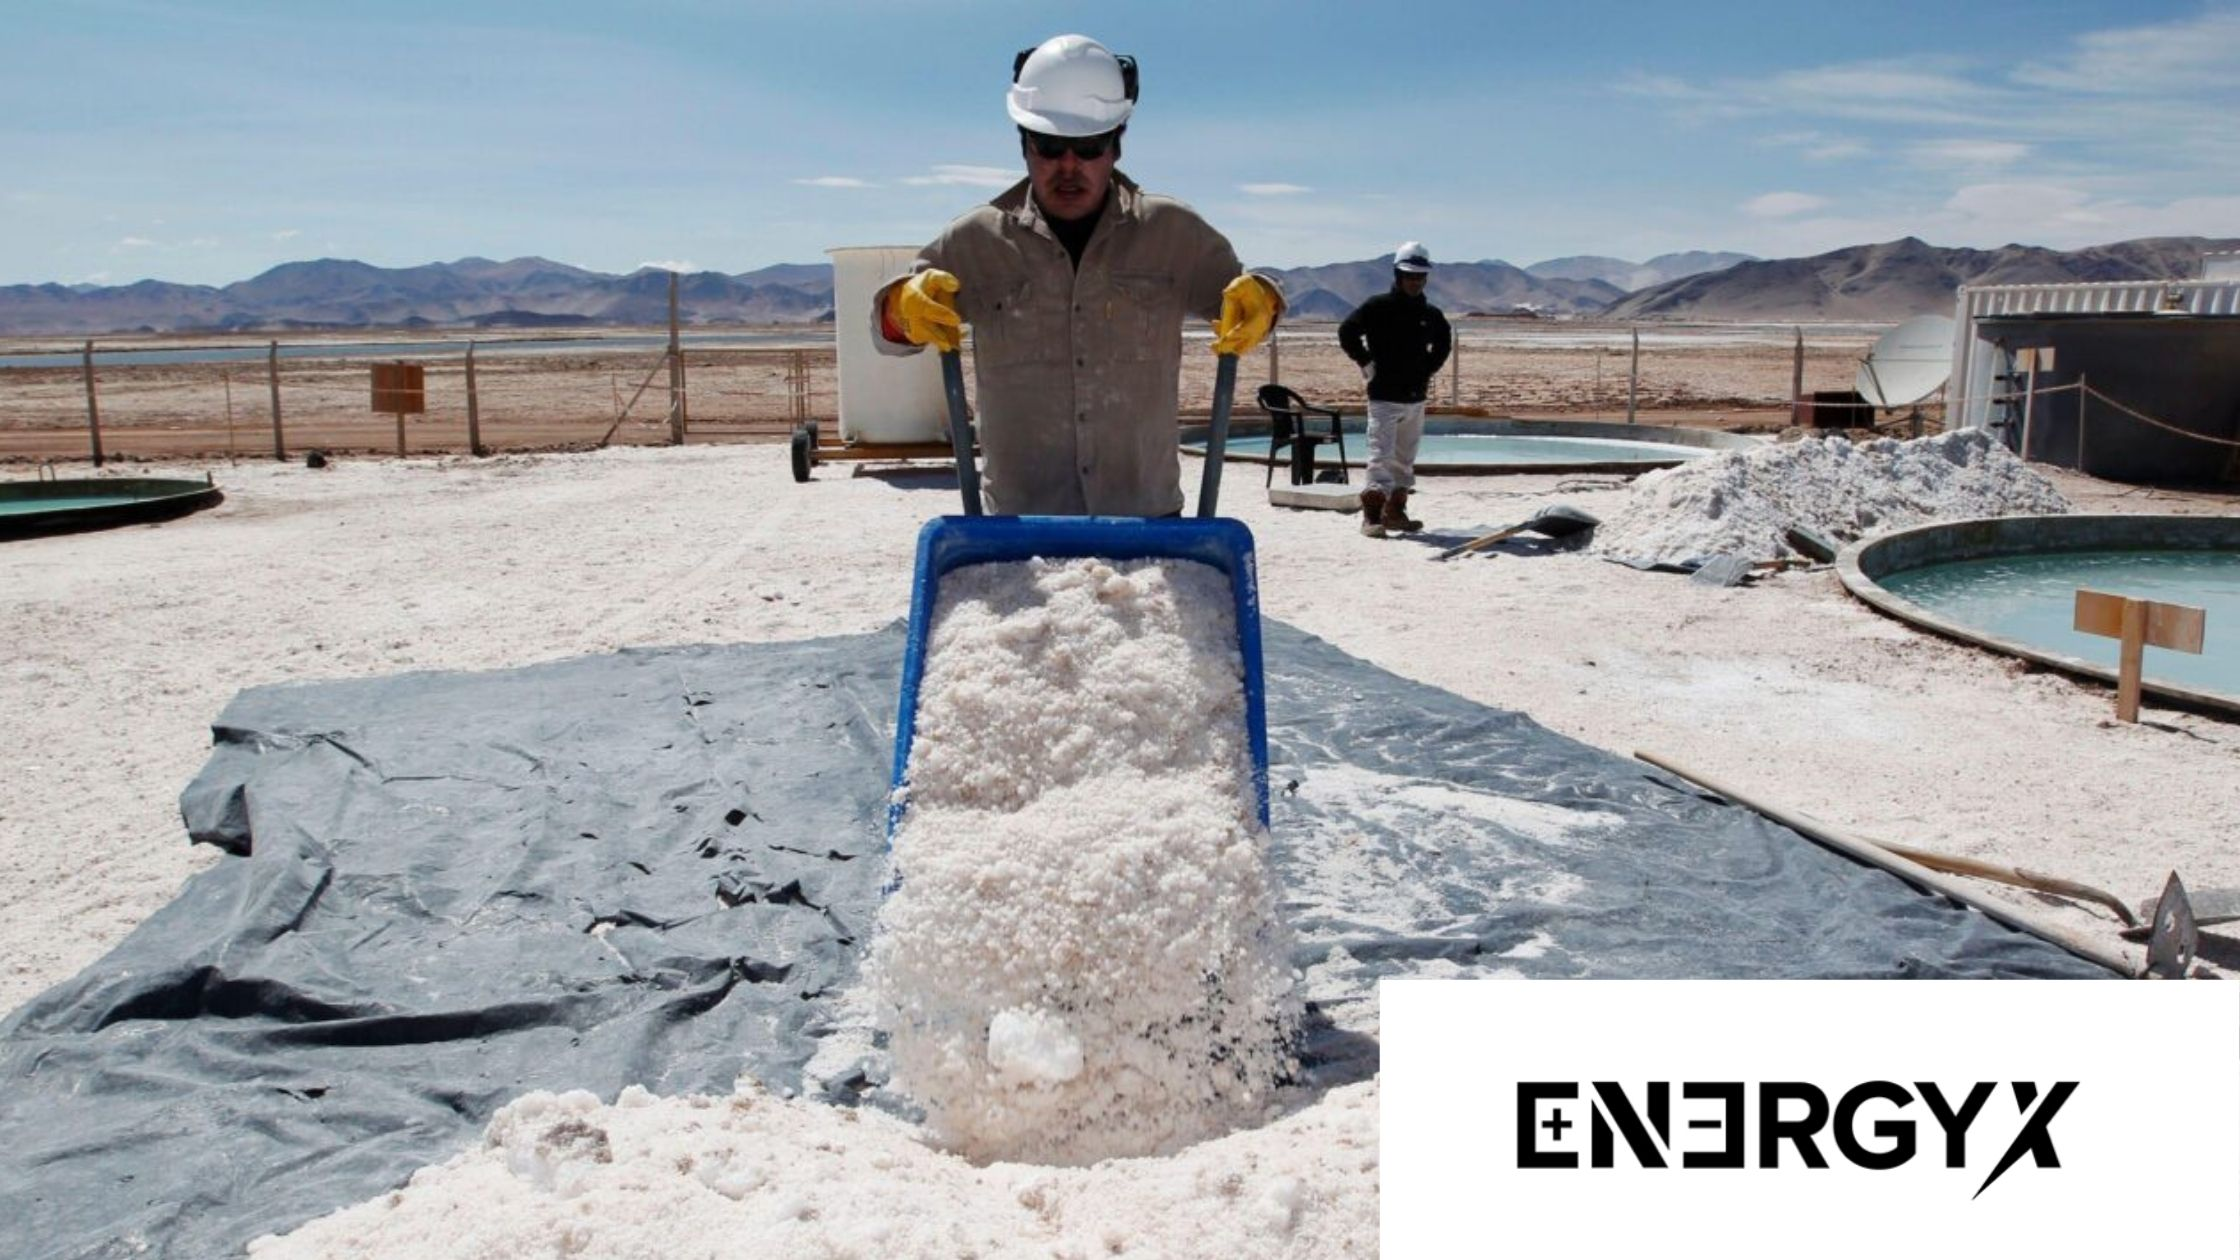 Argentina, Bolivia and Chile need a responsible lithium boom